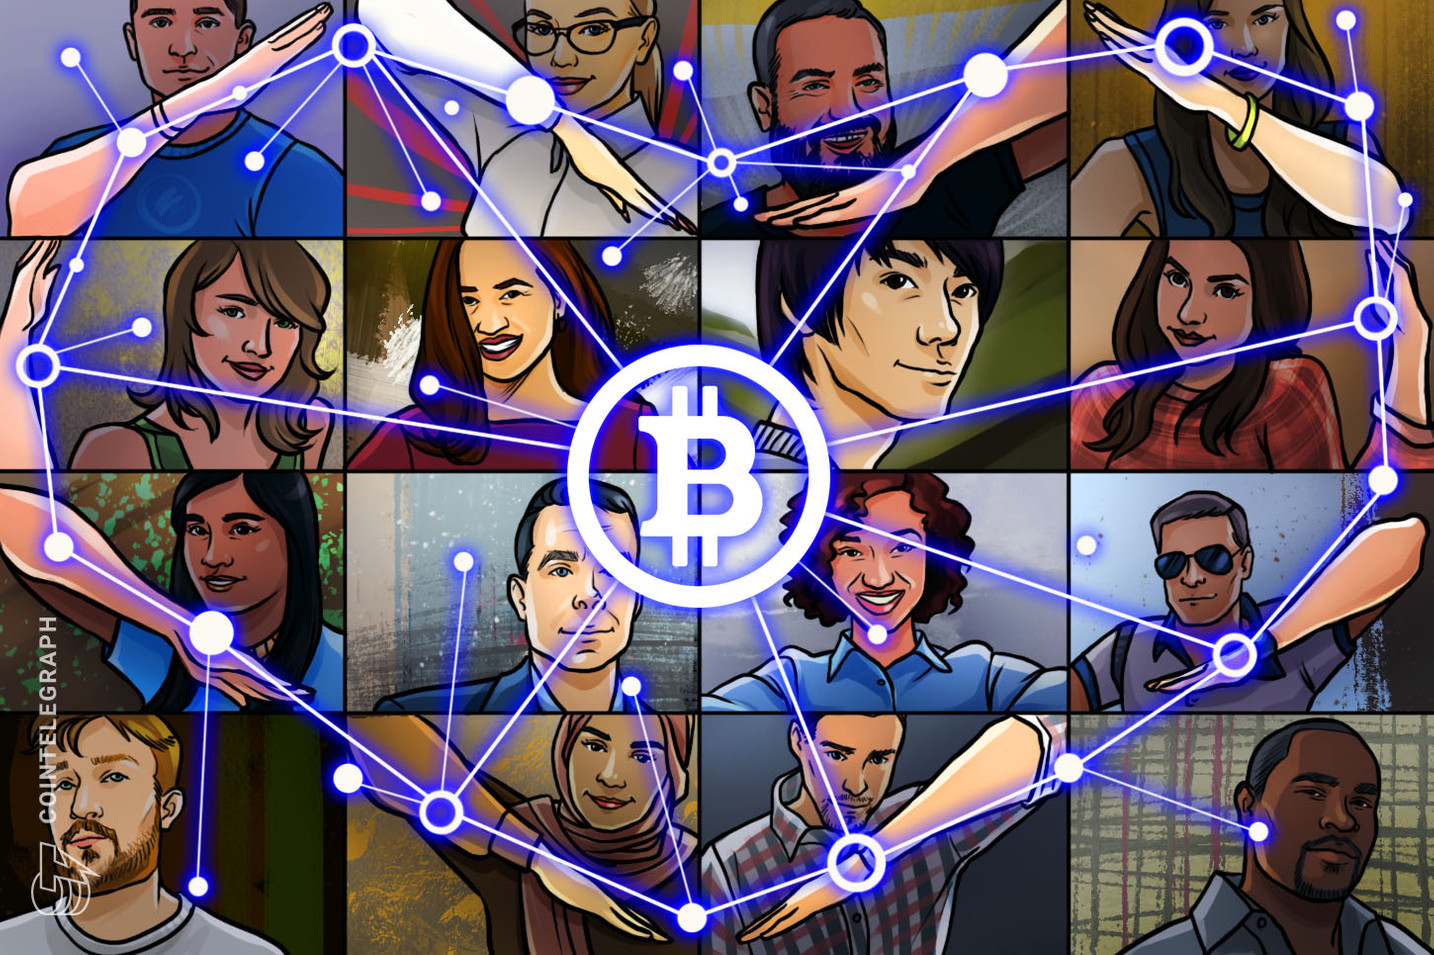 Bitcoin Tuesday aims to raise $1M for good causes today